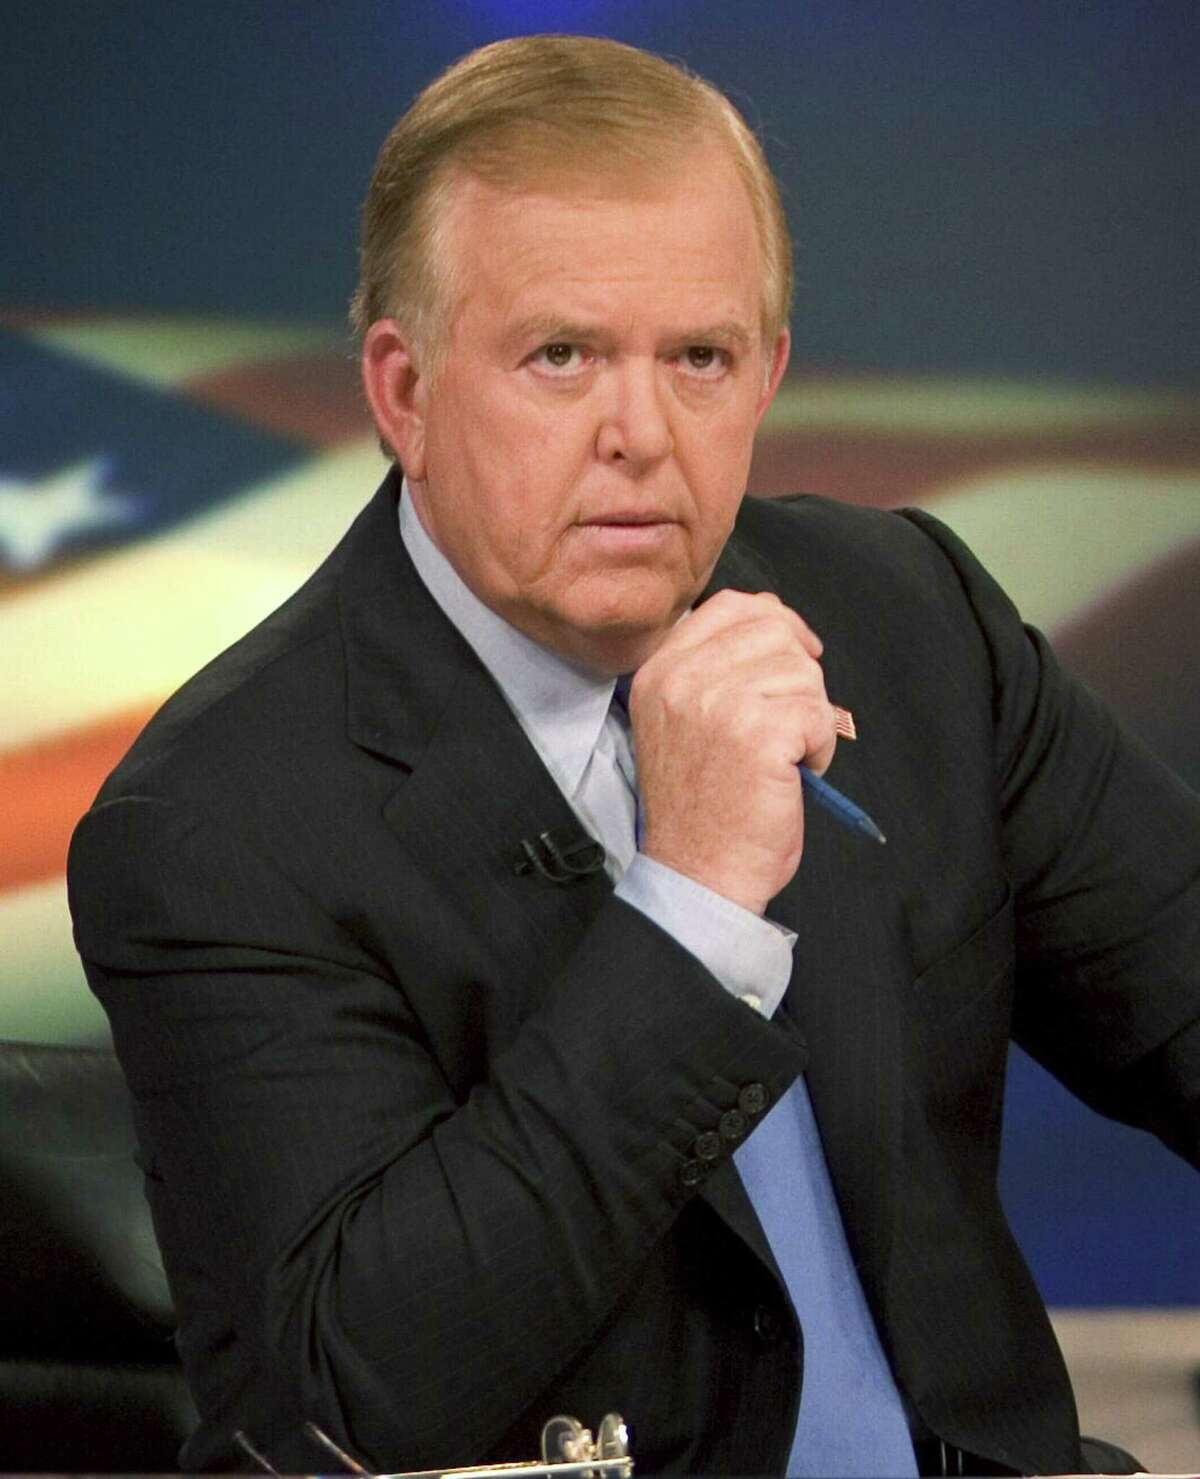 An on-air confrontation with Lou Dobbs helped hasten Ralph Peters' departure from Fox.